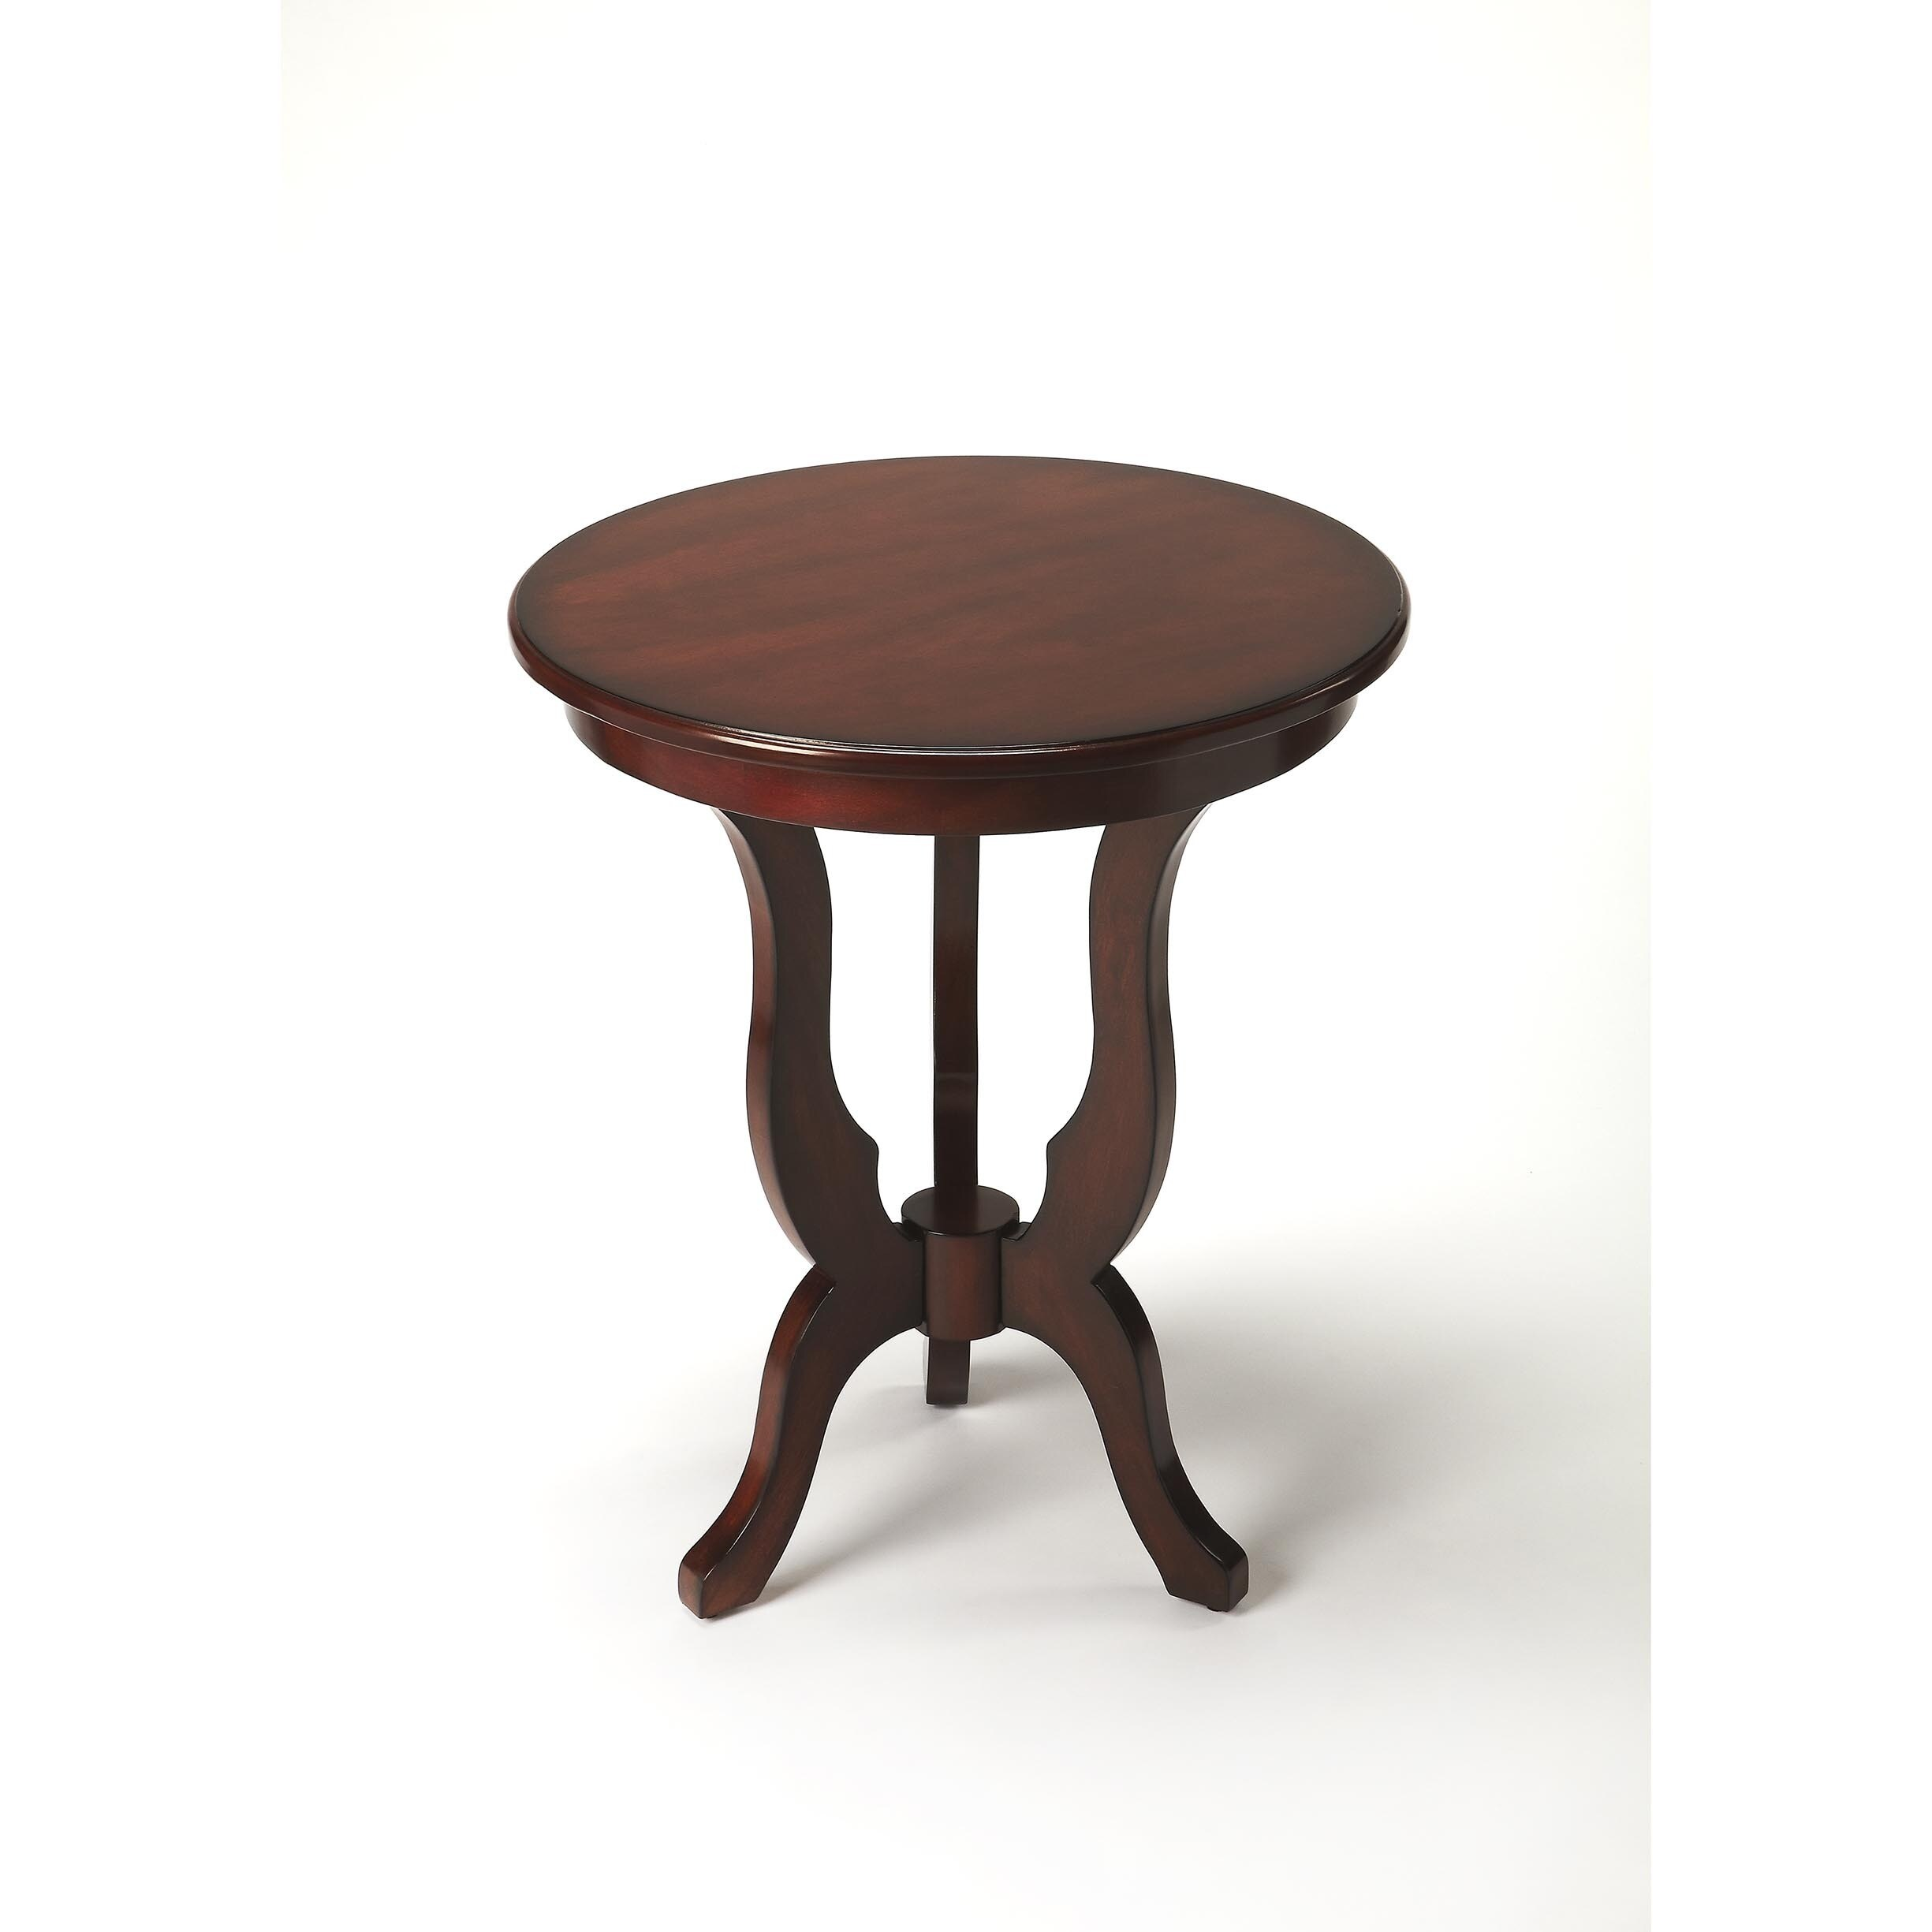 butler cleasby plantation cherry finish wood end table round free shipping today glass top couch kartell side arch coffee macys furniture recliner chairs catalina nightstand